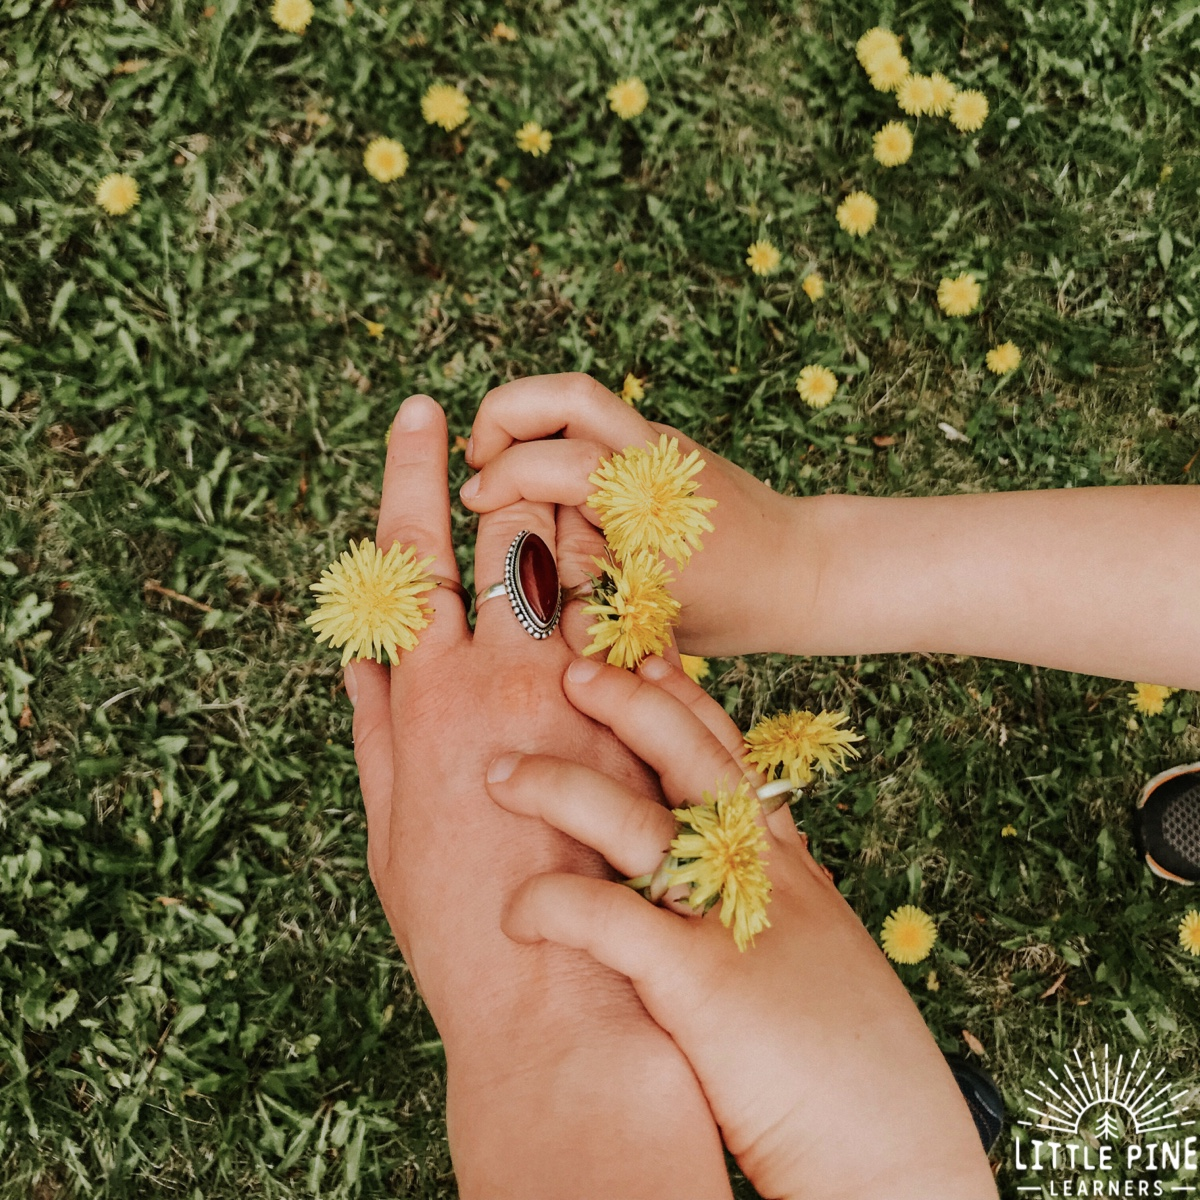 When I look back on my childhood, the simple activities stick in memory like glue.  Oftentimes, those activities are the ones that brought endless hours of enjoyment and entertainment. When spring arrived and those first dandelions popped up, I was outside crafting and playing with them all day long! The craft that I looked forward to the most every spring, was the classic dandelion ring. Read on to learn two simple ways to make dandelion rings!